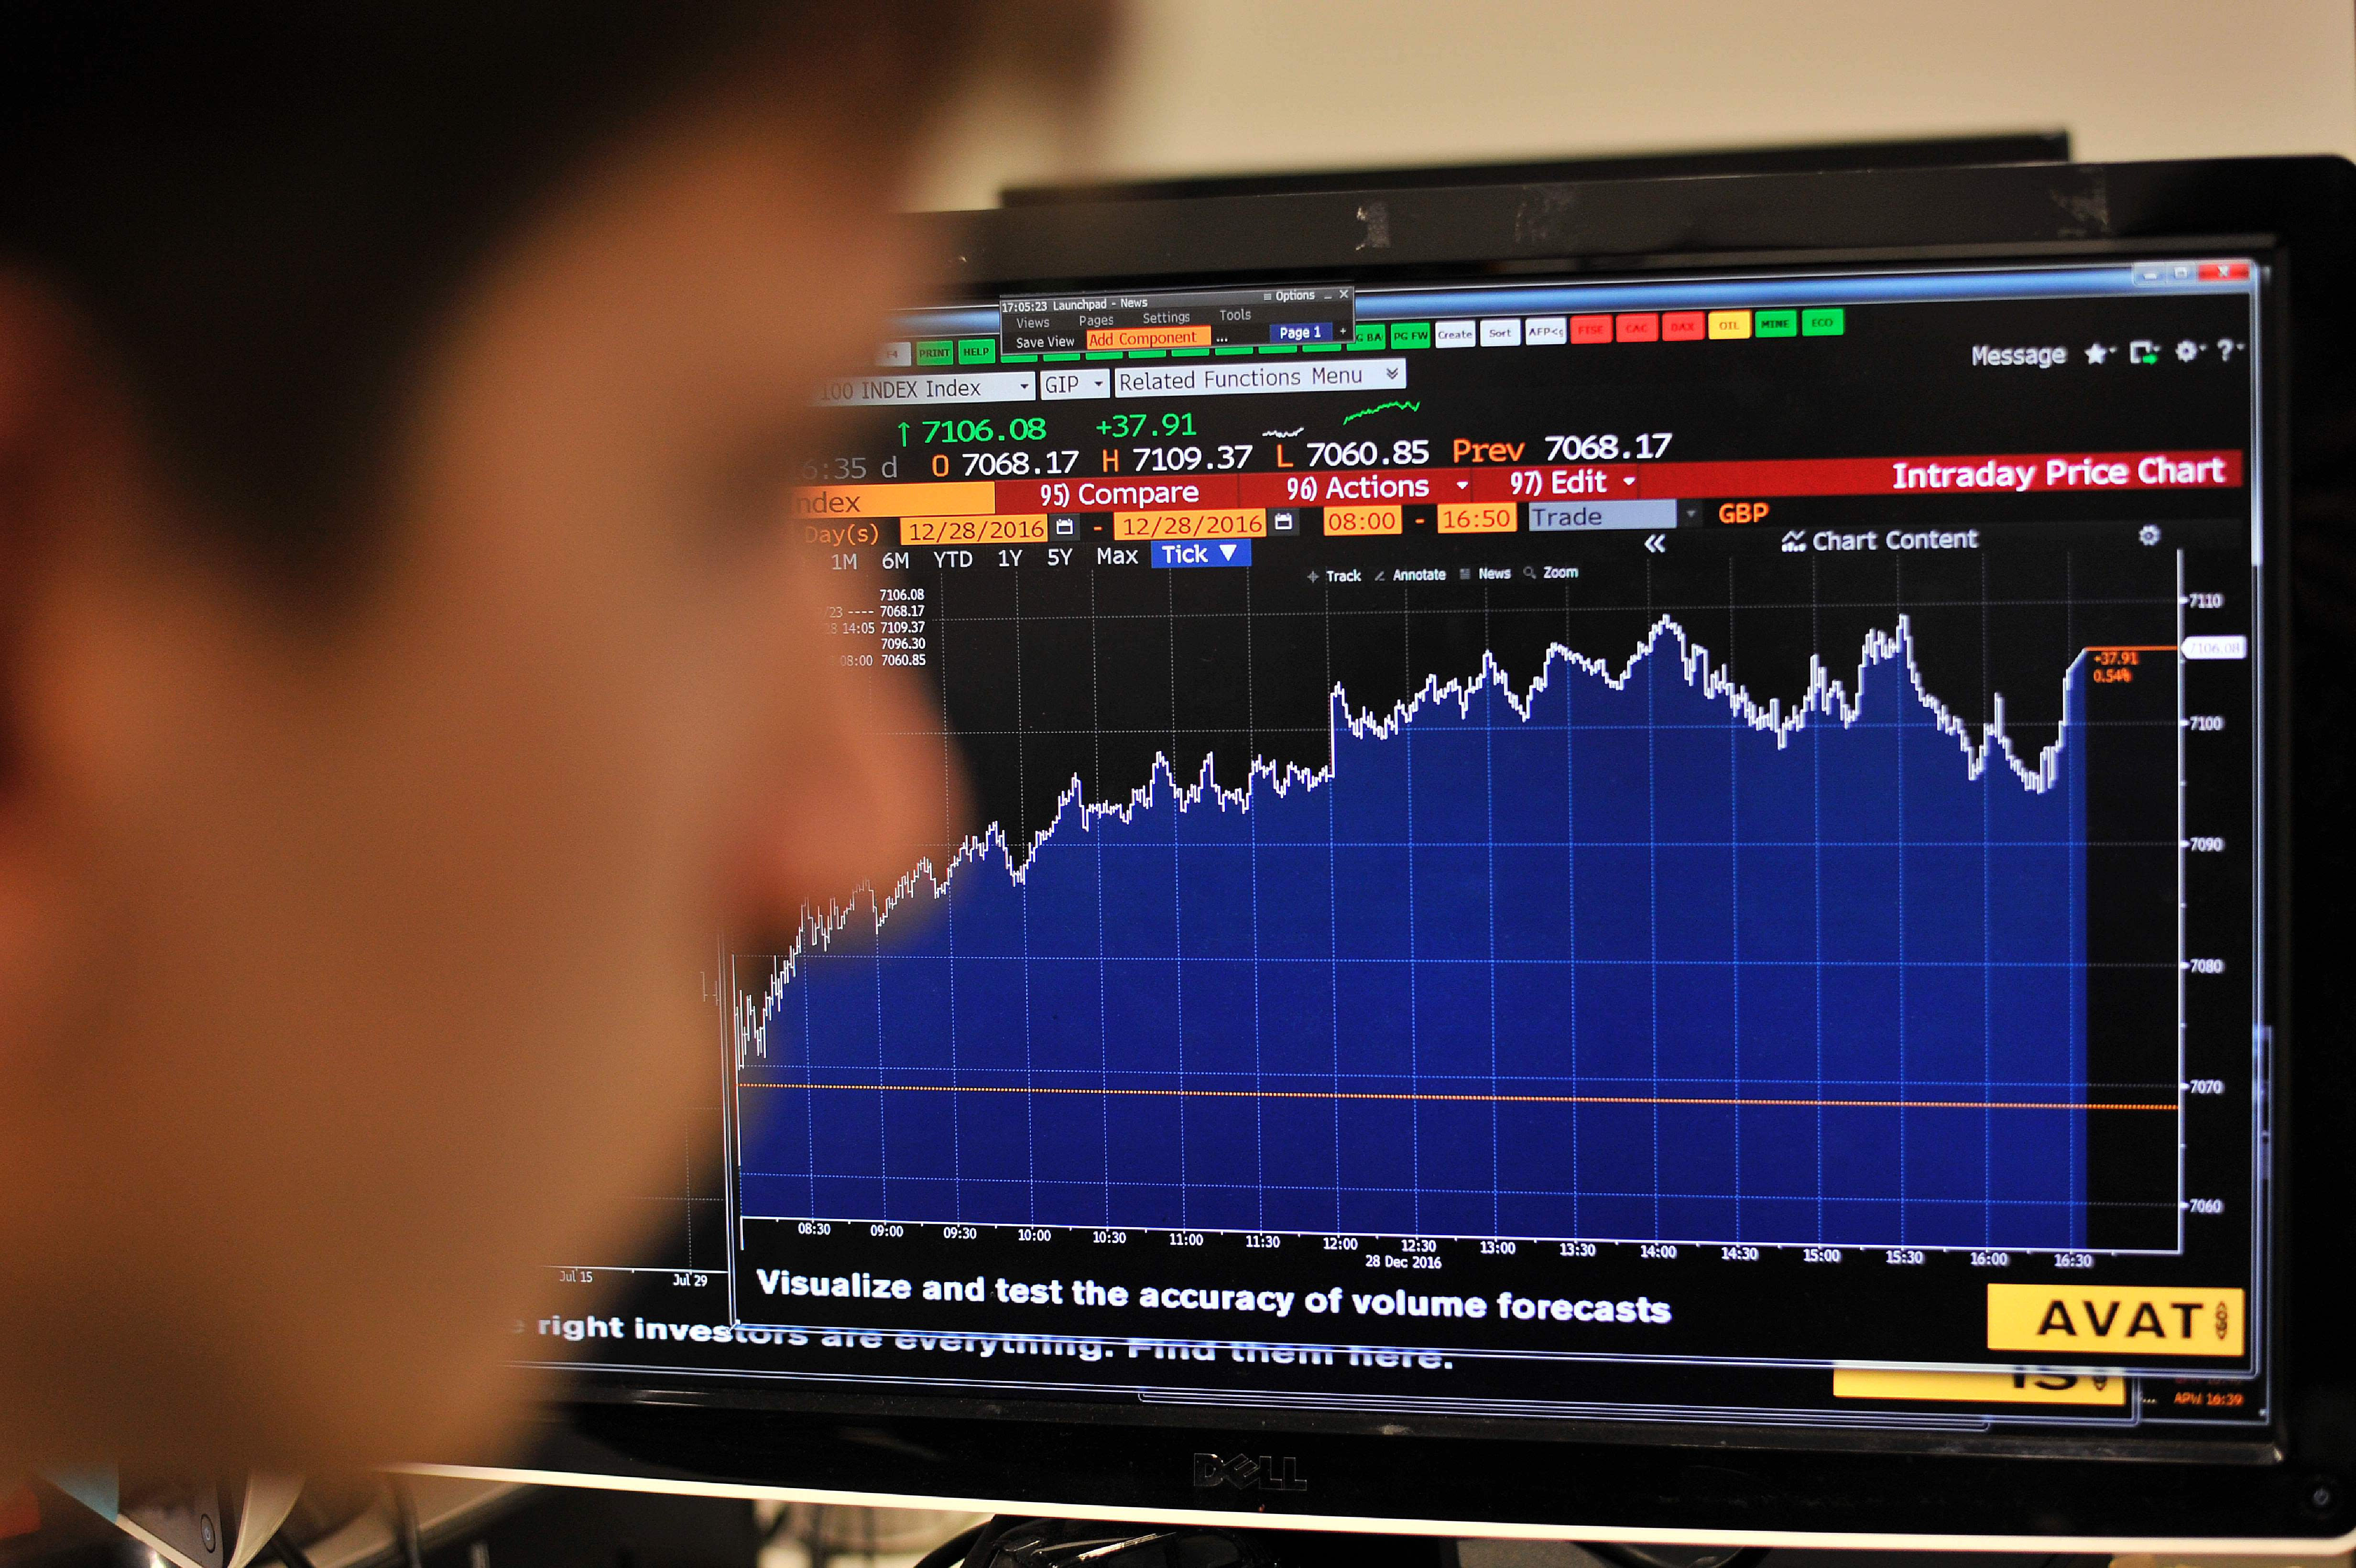 Fear of 'extremes' pushes FTSE to below dotcom levels